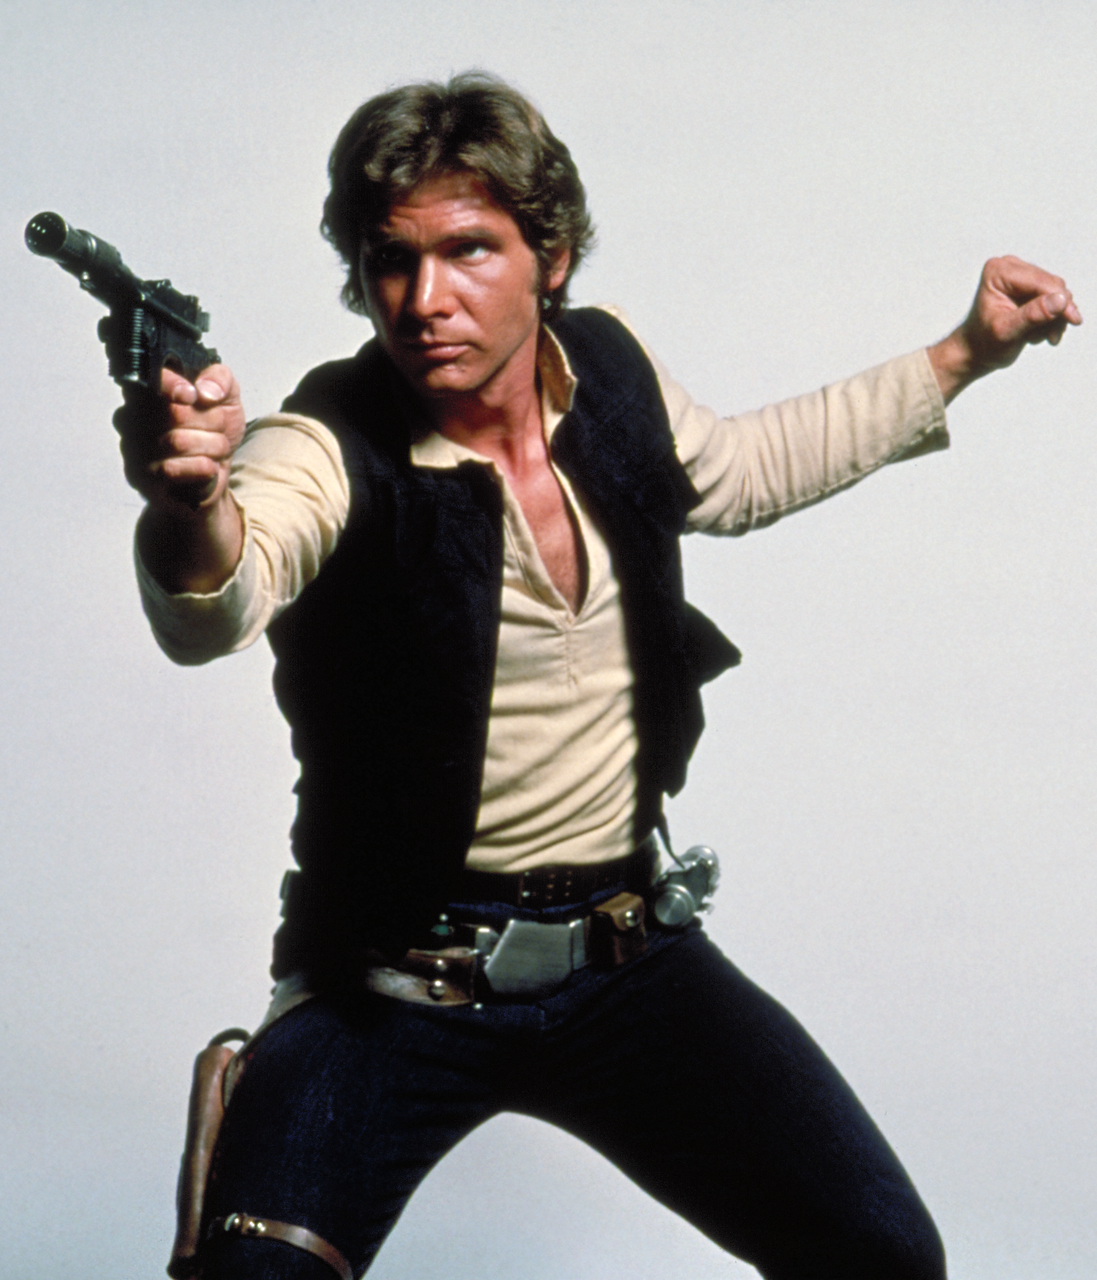 Han Solo.png - Han Solo, Transparent background PNG HD thumbnail